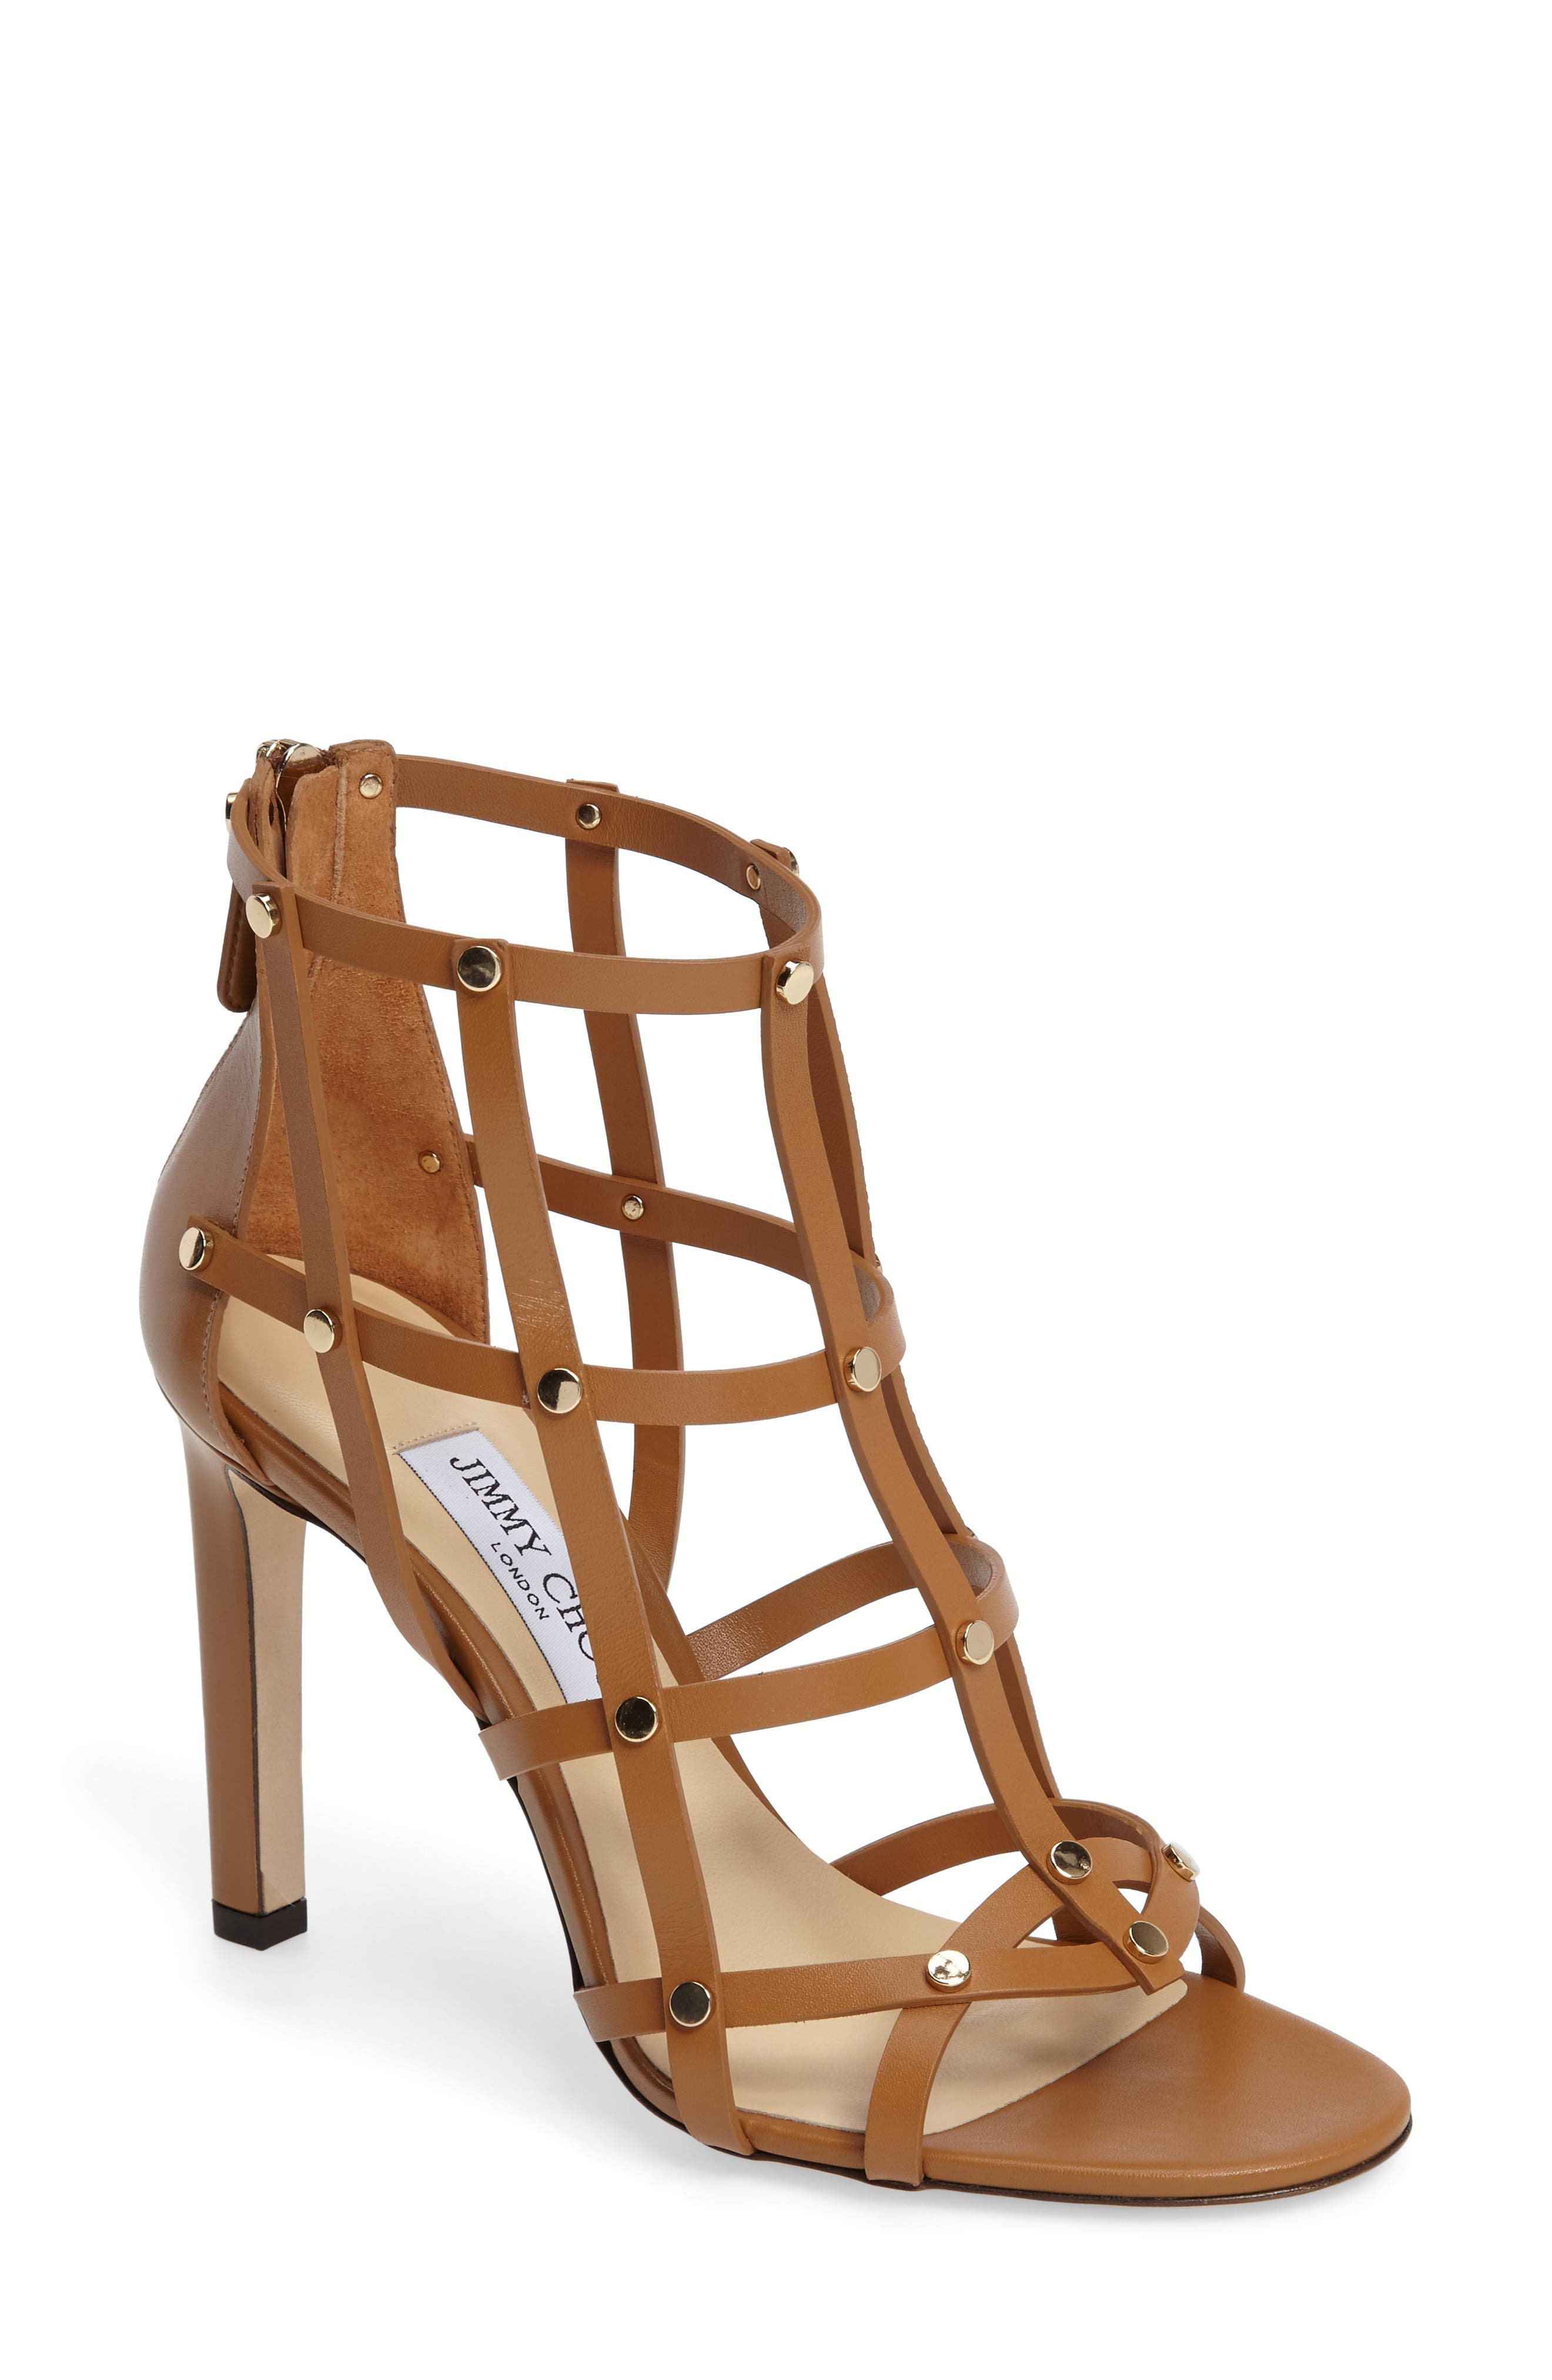 Alternate Image 1 Selected - Jimmy Choo Tina Cage Sandal (Women)